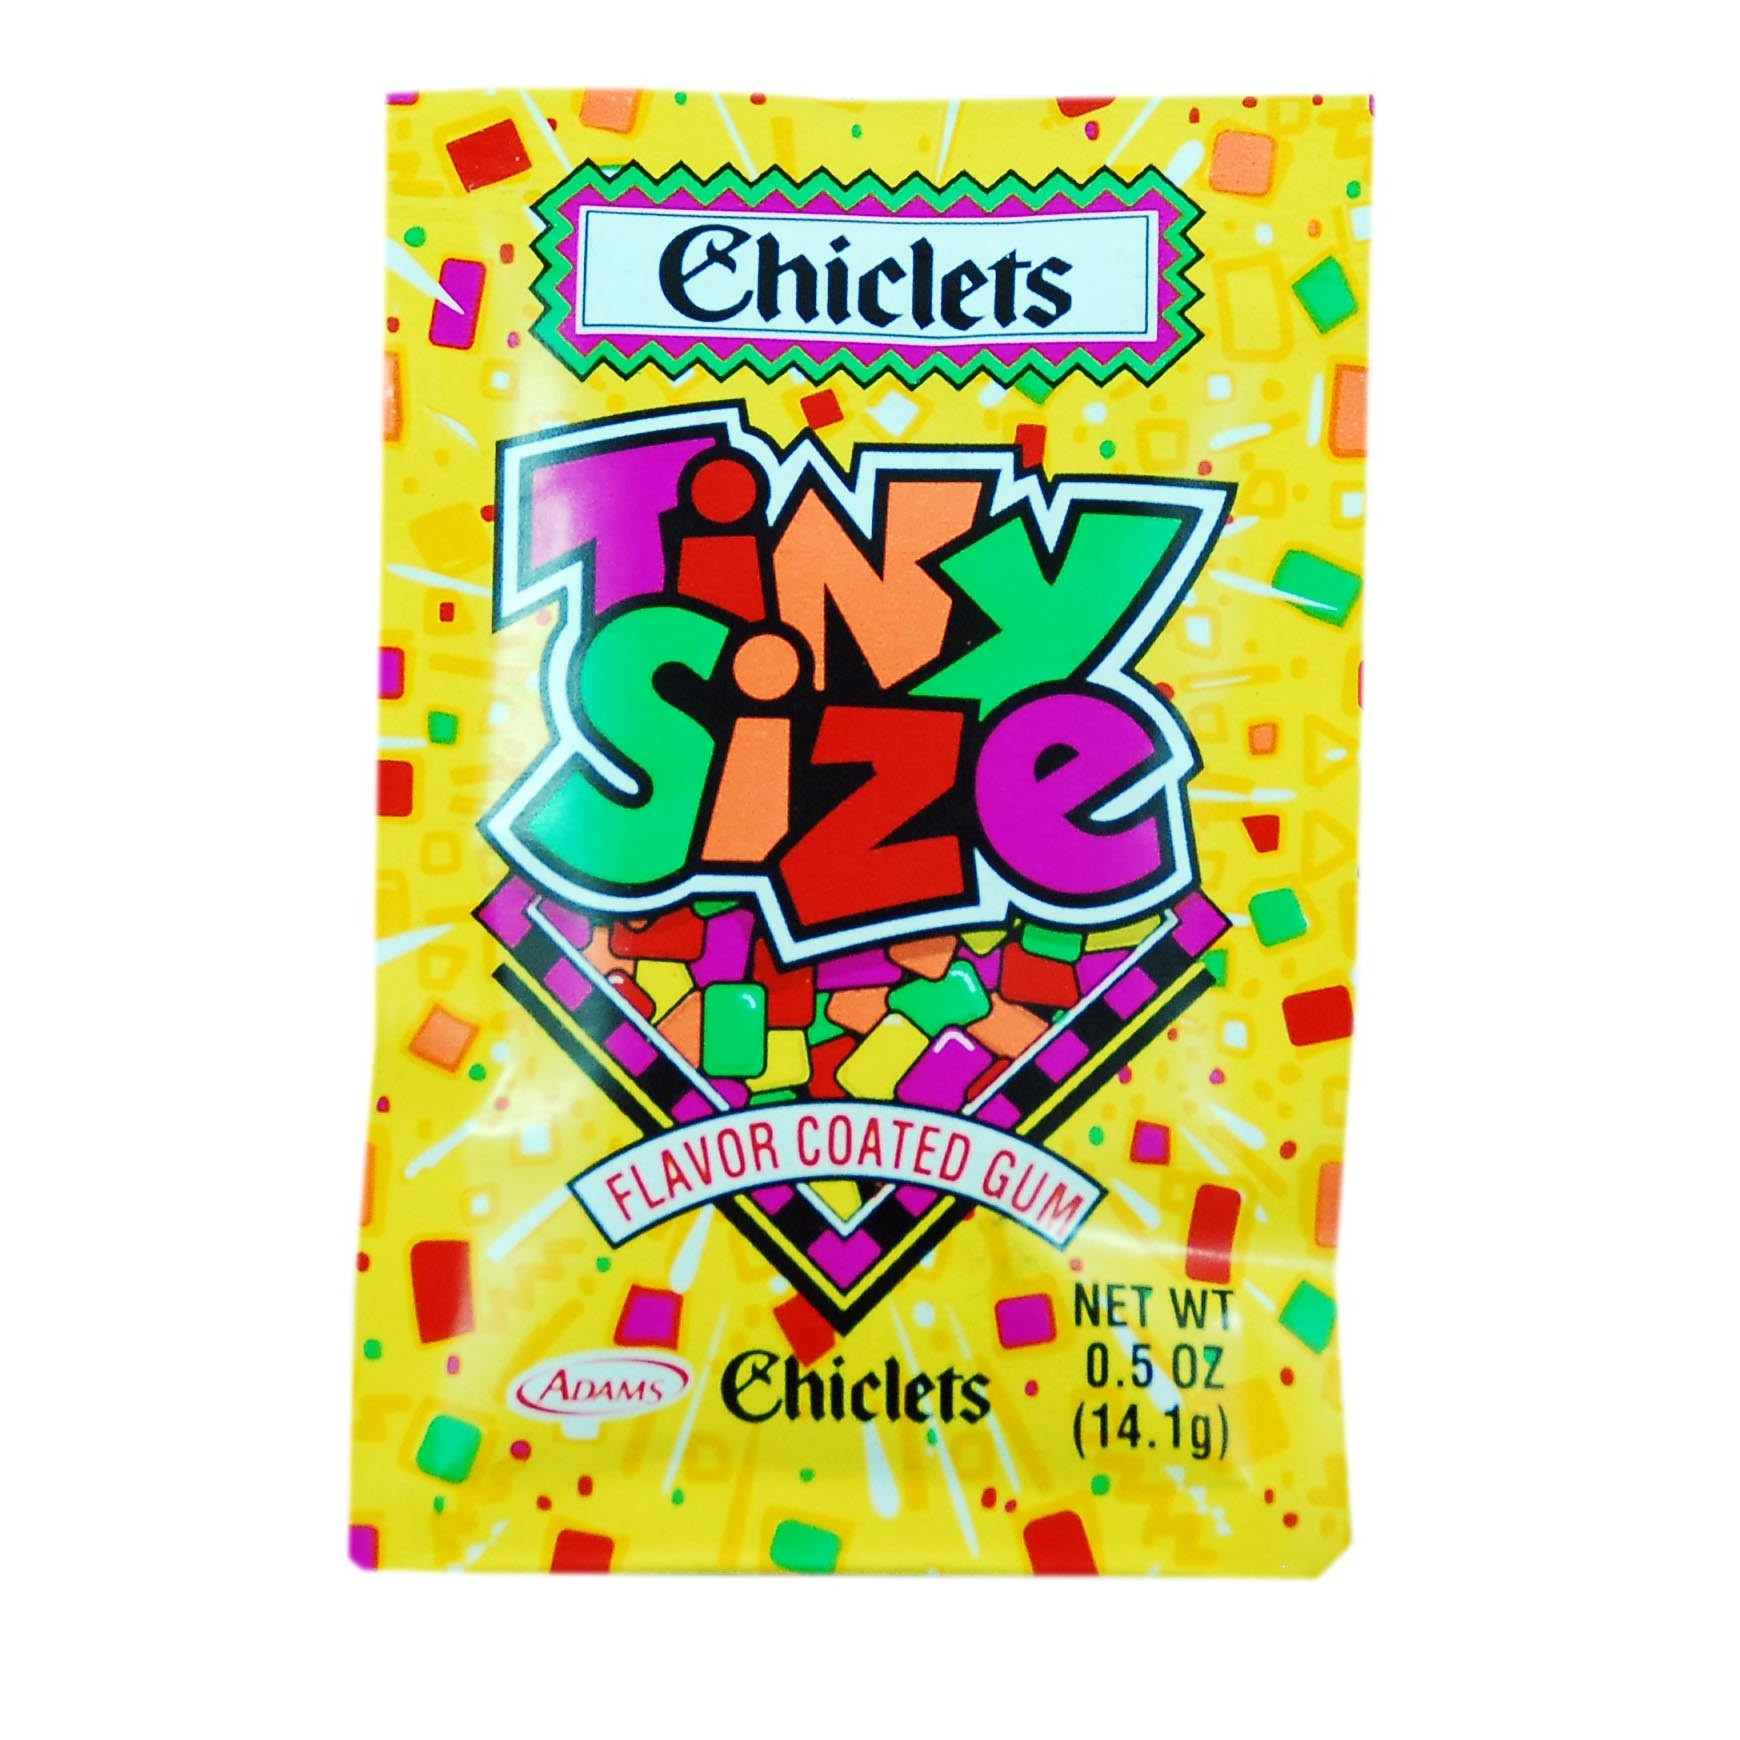 Chiclets Gum Bulk Cases Pictures to Pin on Pinterest - PinsDaddy